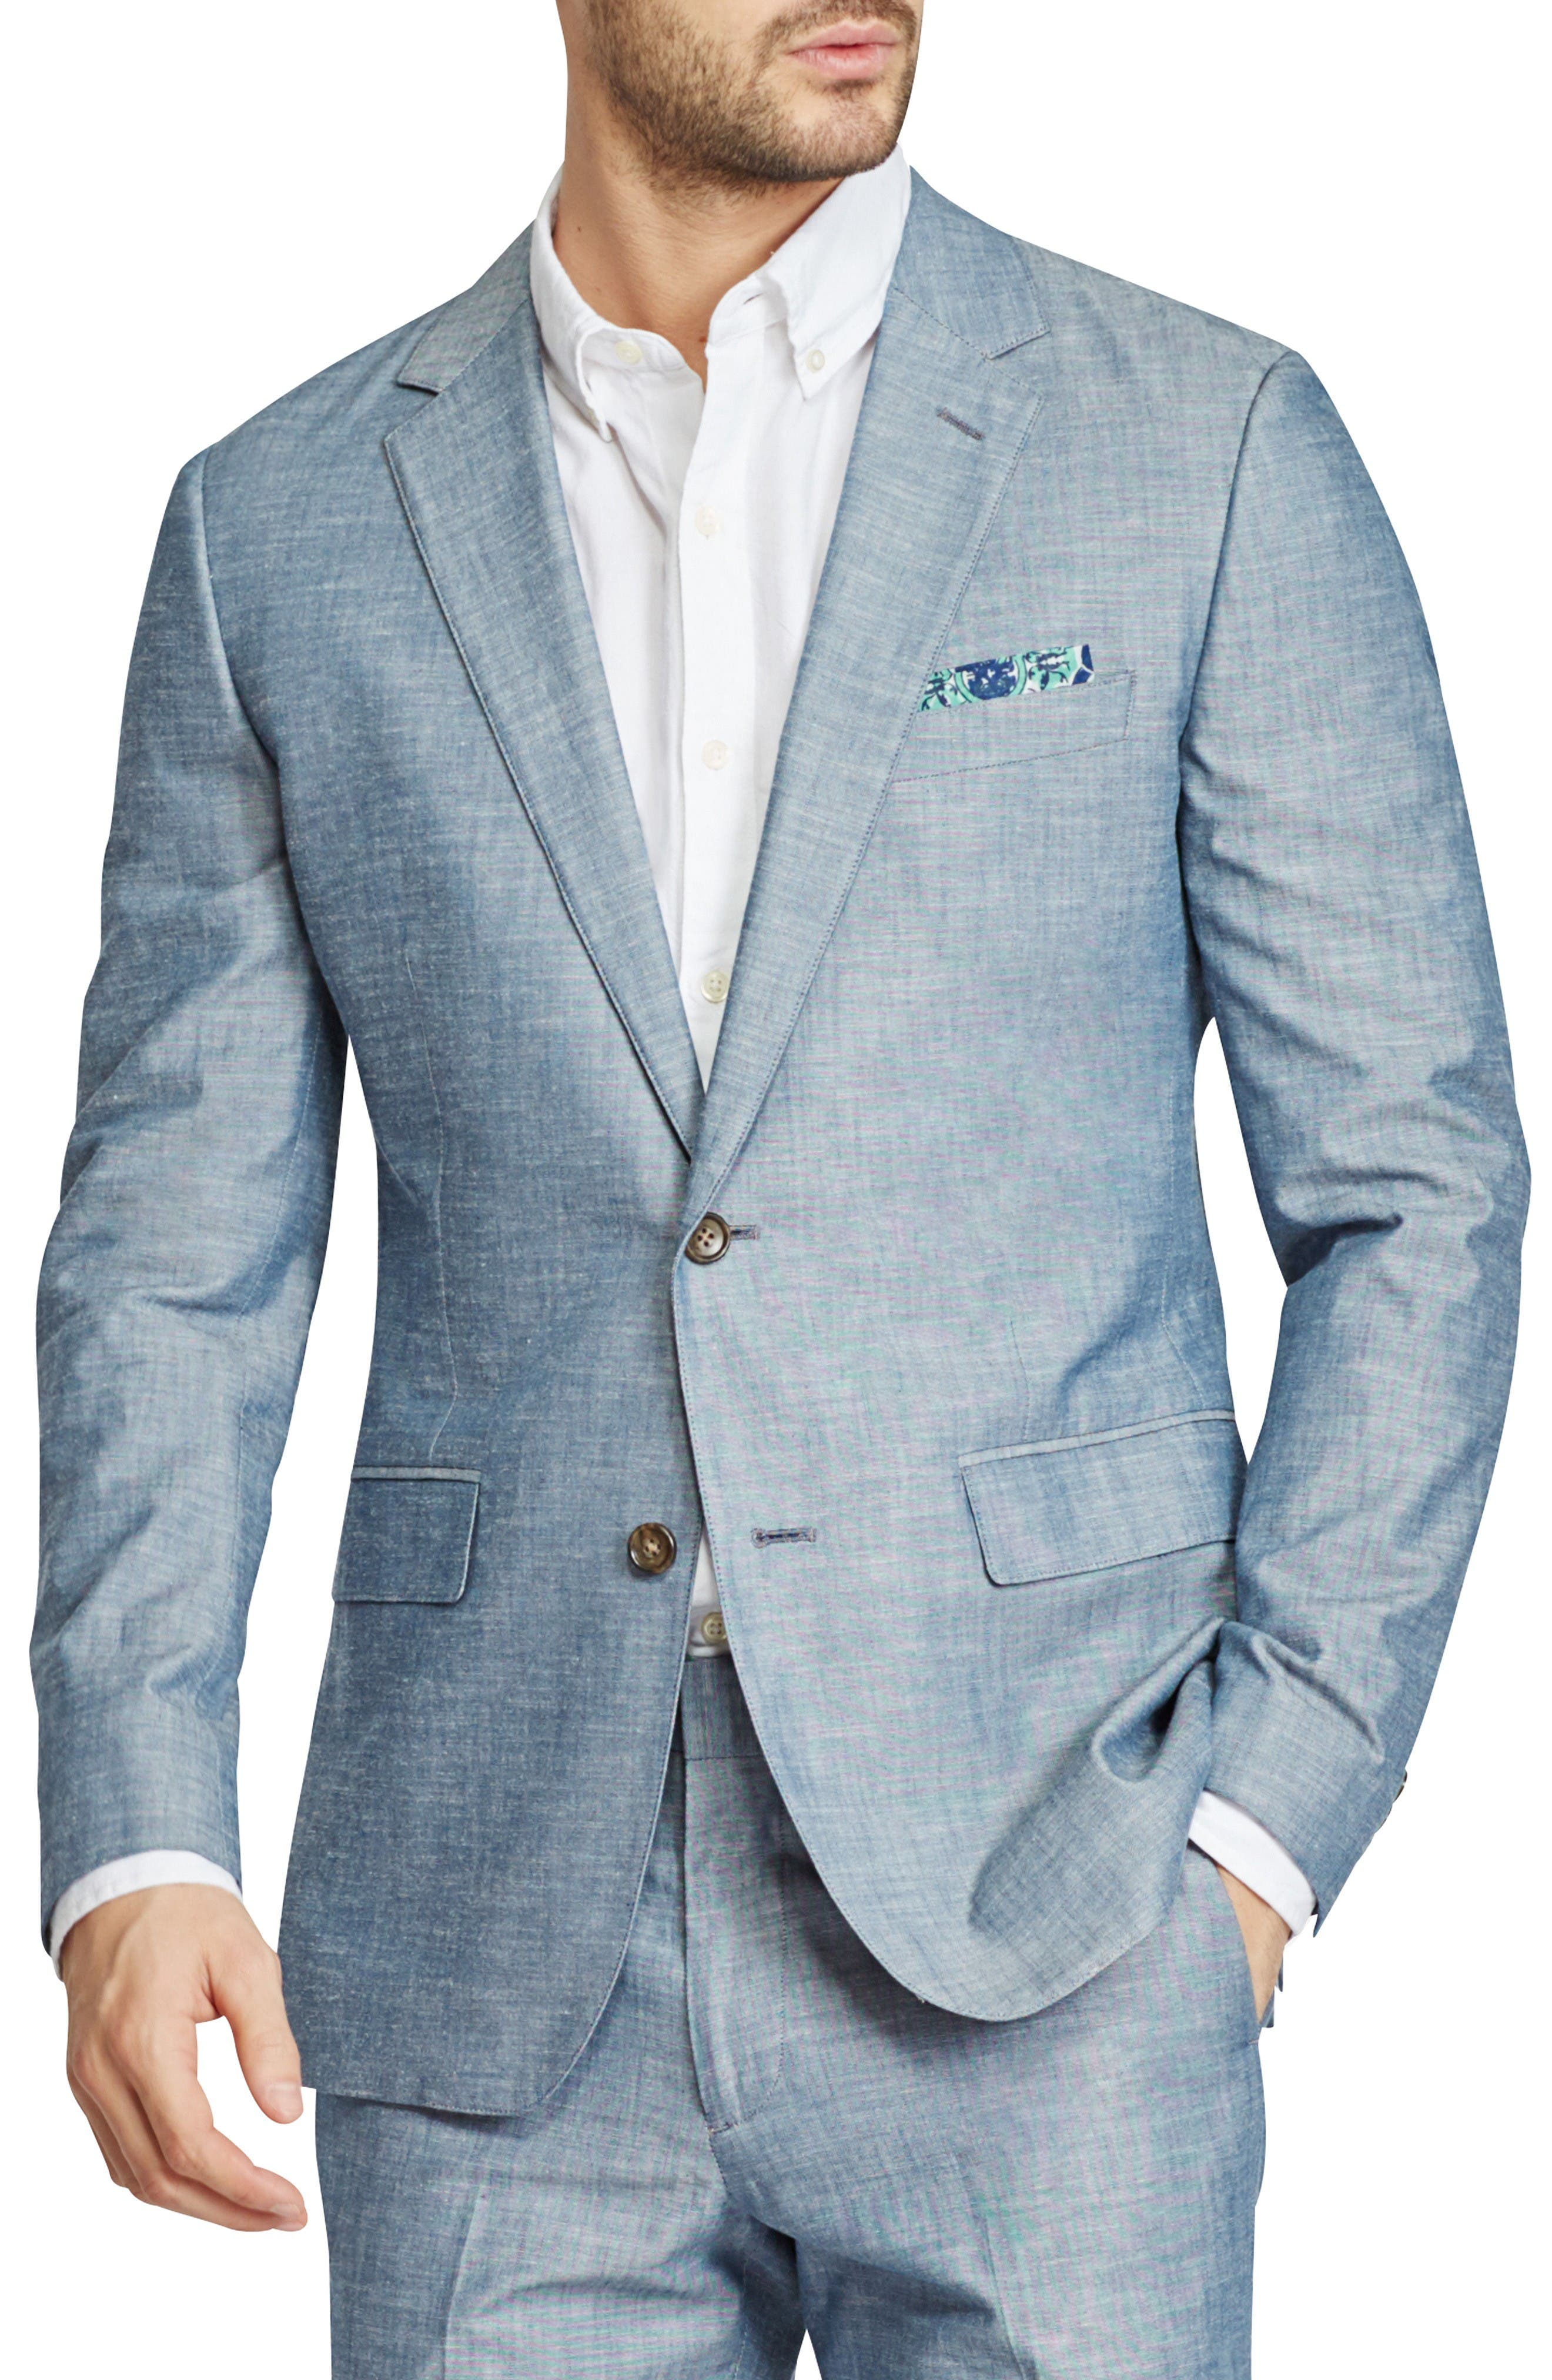 Trim Fit Chambray Cotton Blazer,                         Main,                         color, Solid Blue